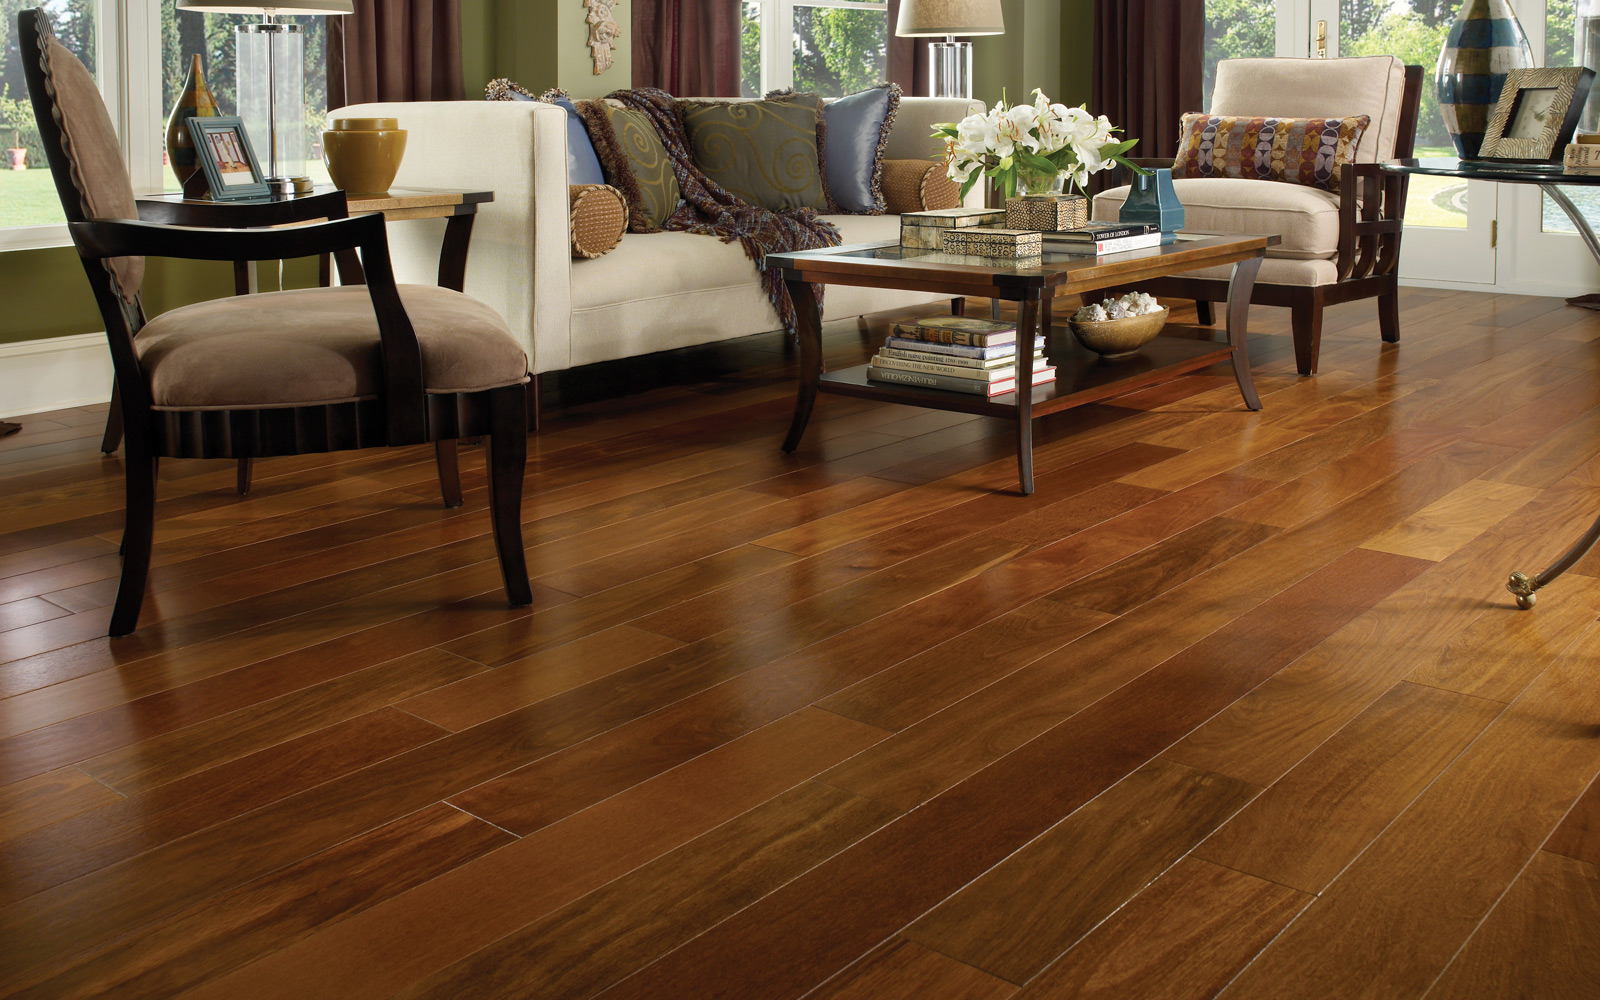 Superb Rios Hardwood Flooring U2013 Installation U2013 Refinish U2013 Repairs